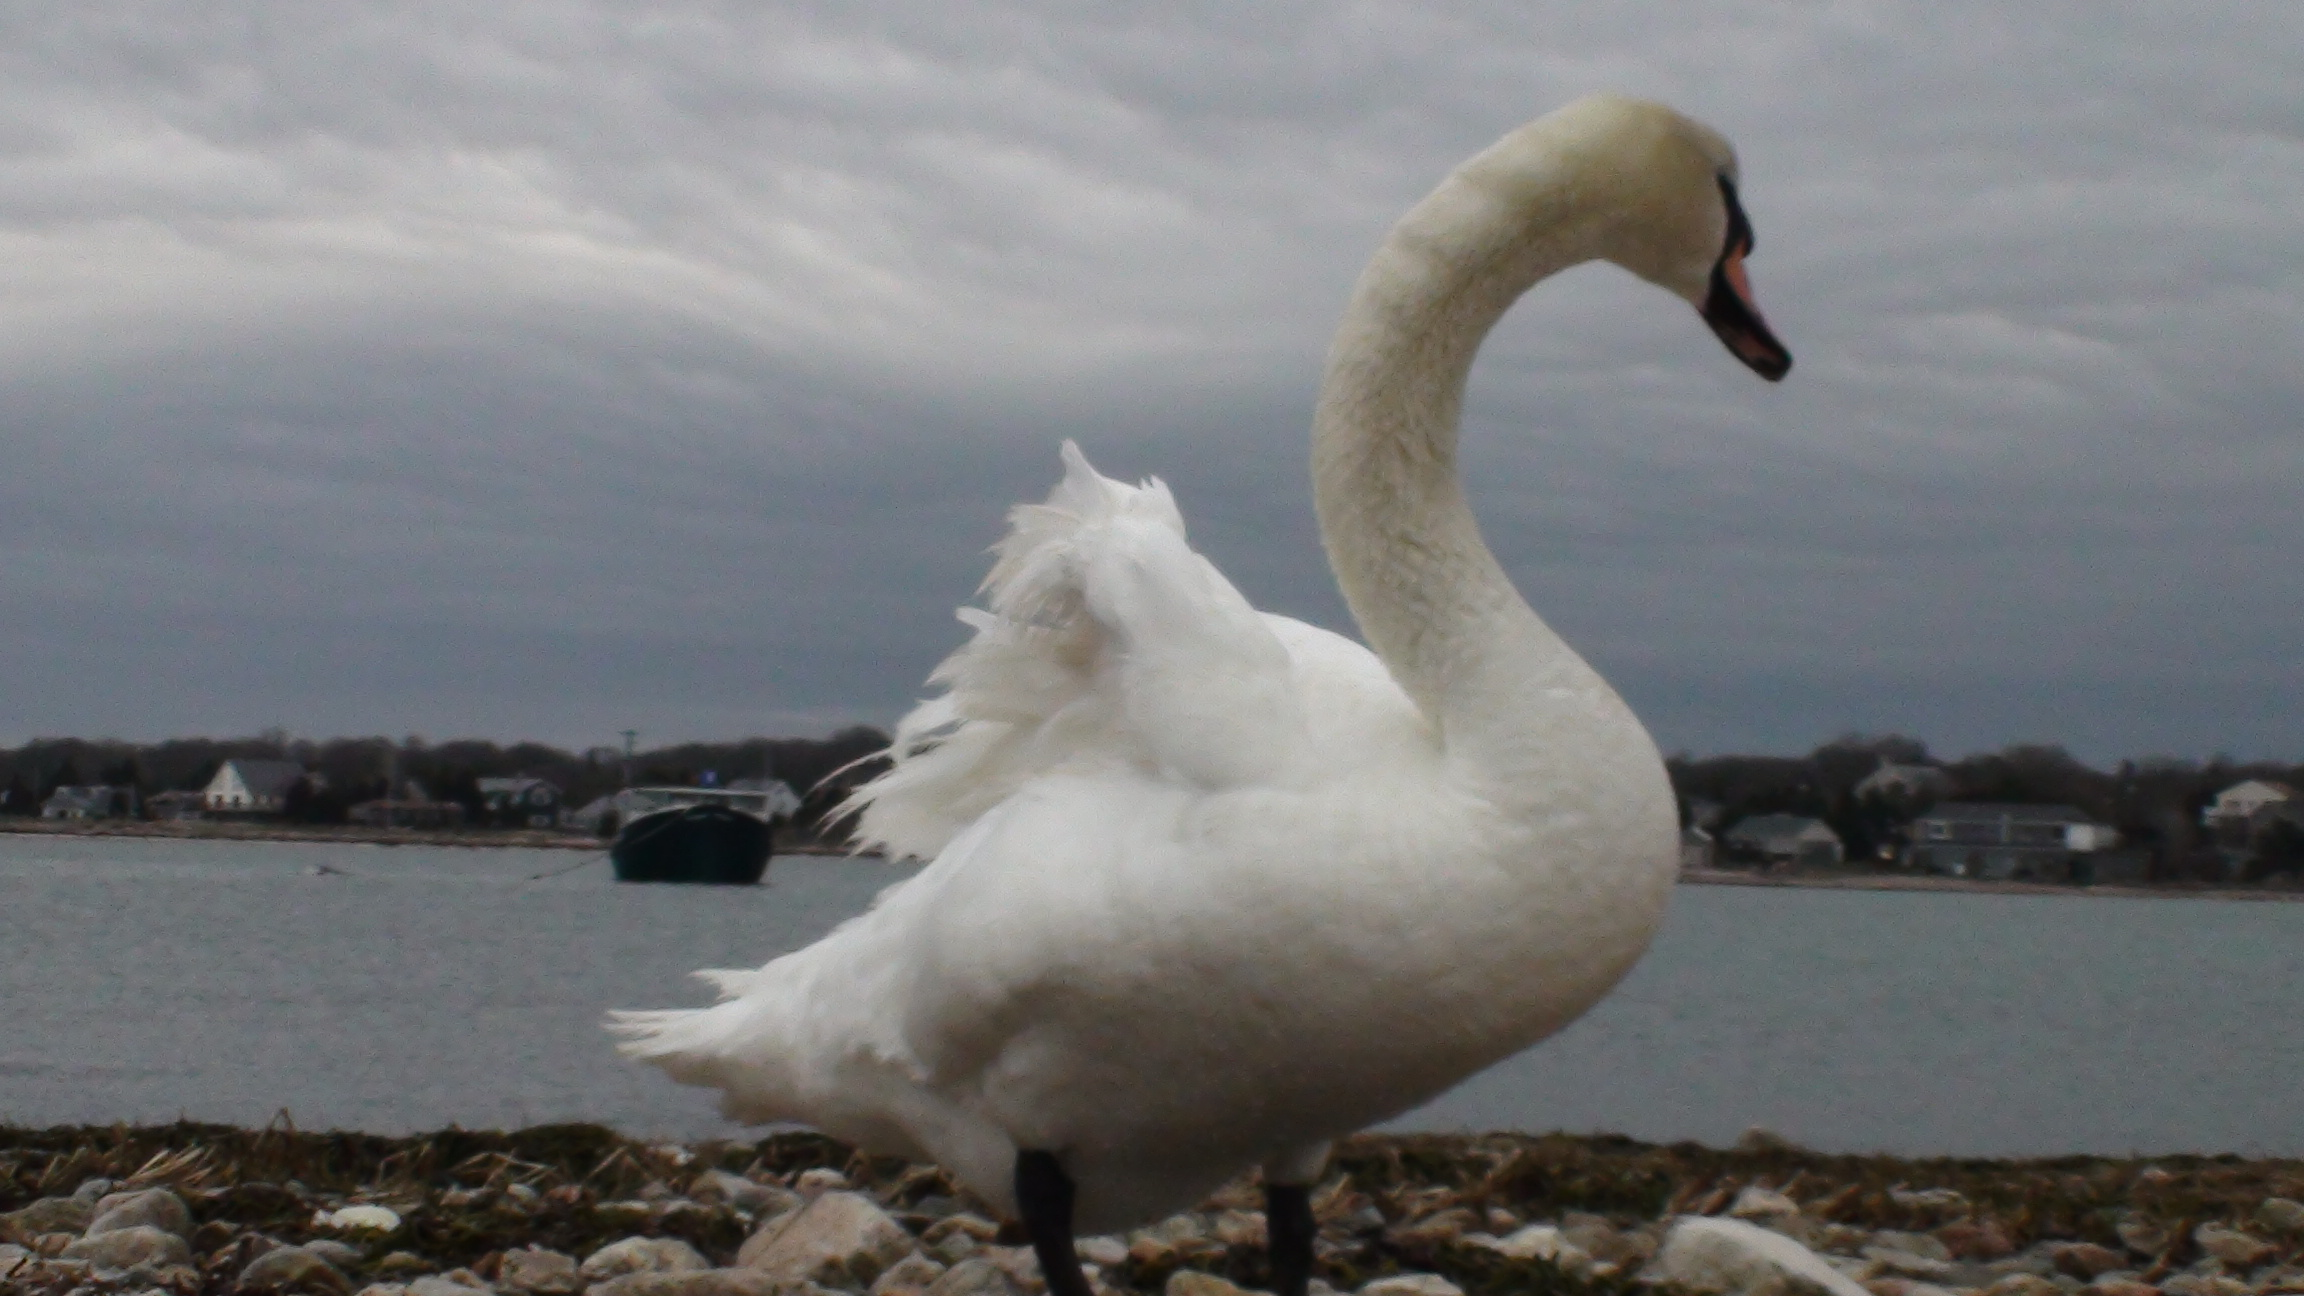 A Swan at Hoppy's Landing